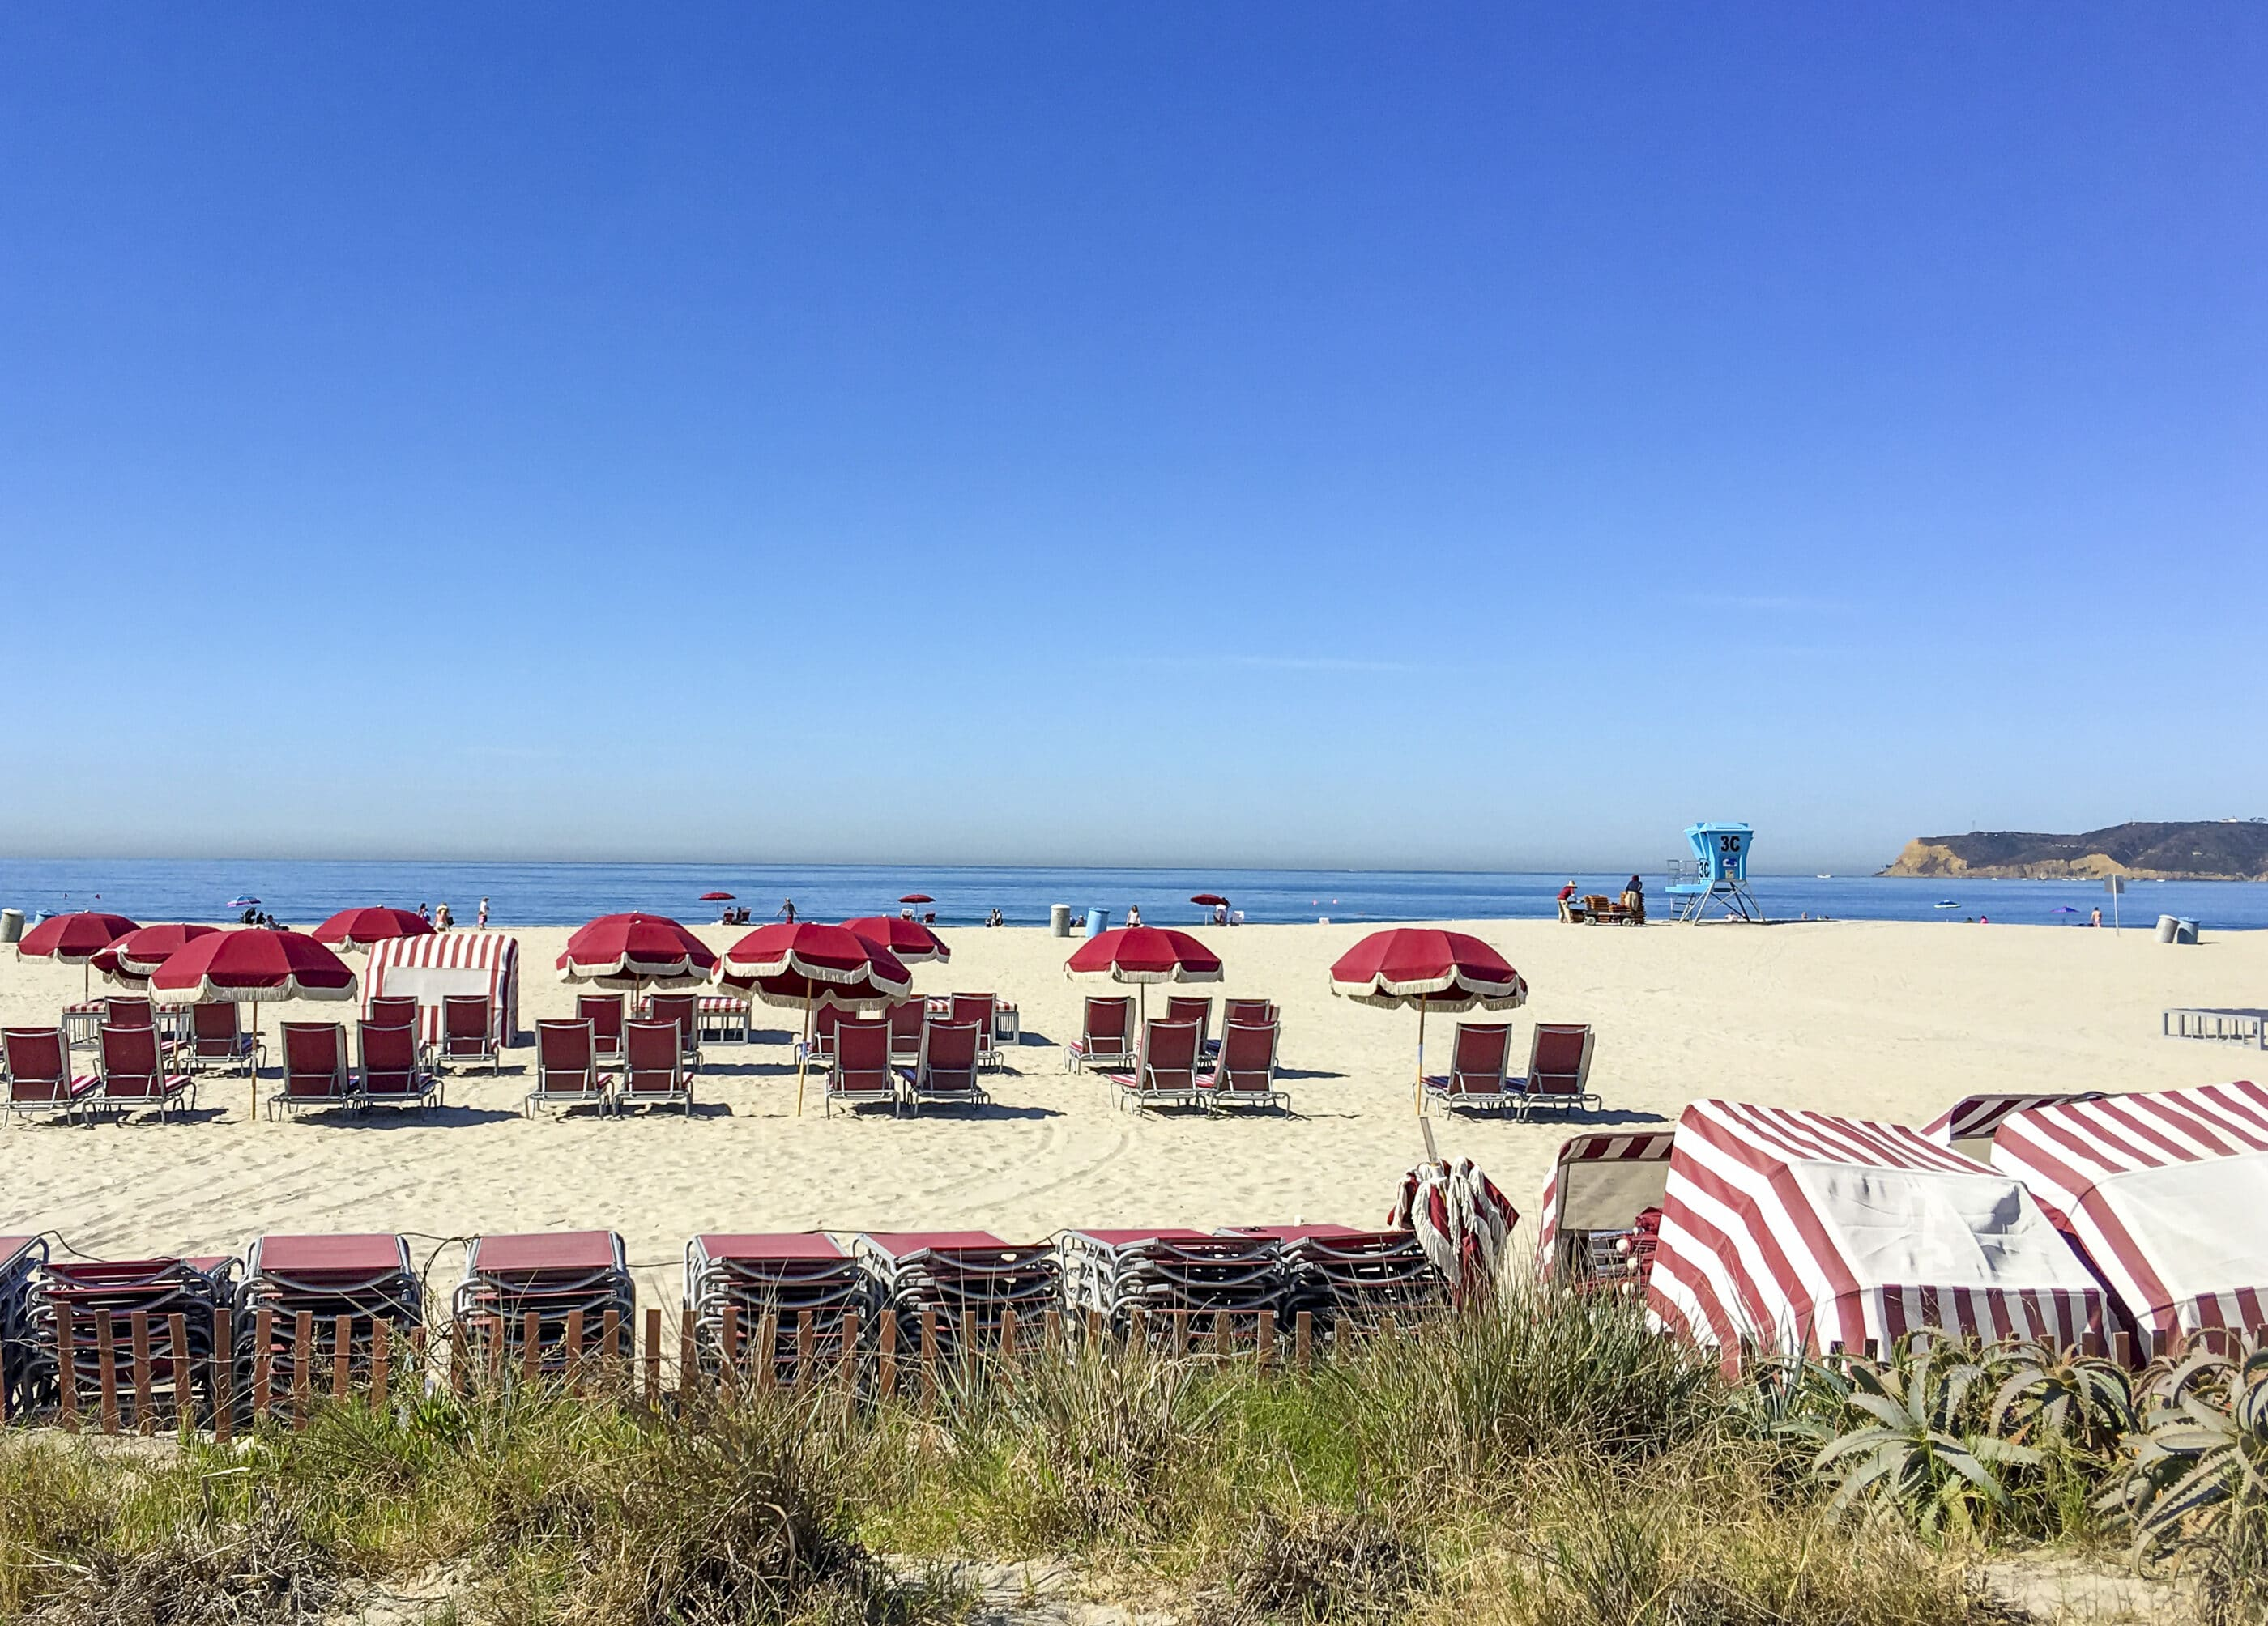 Red beach chairs in the sand in front of Hotel del Coronado.